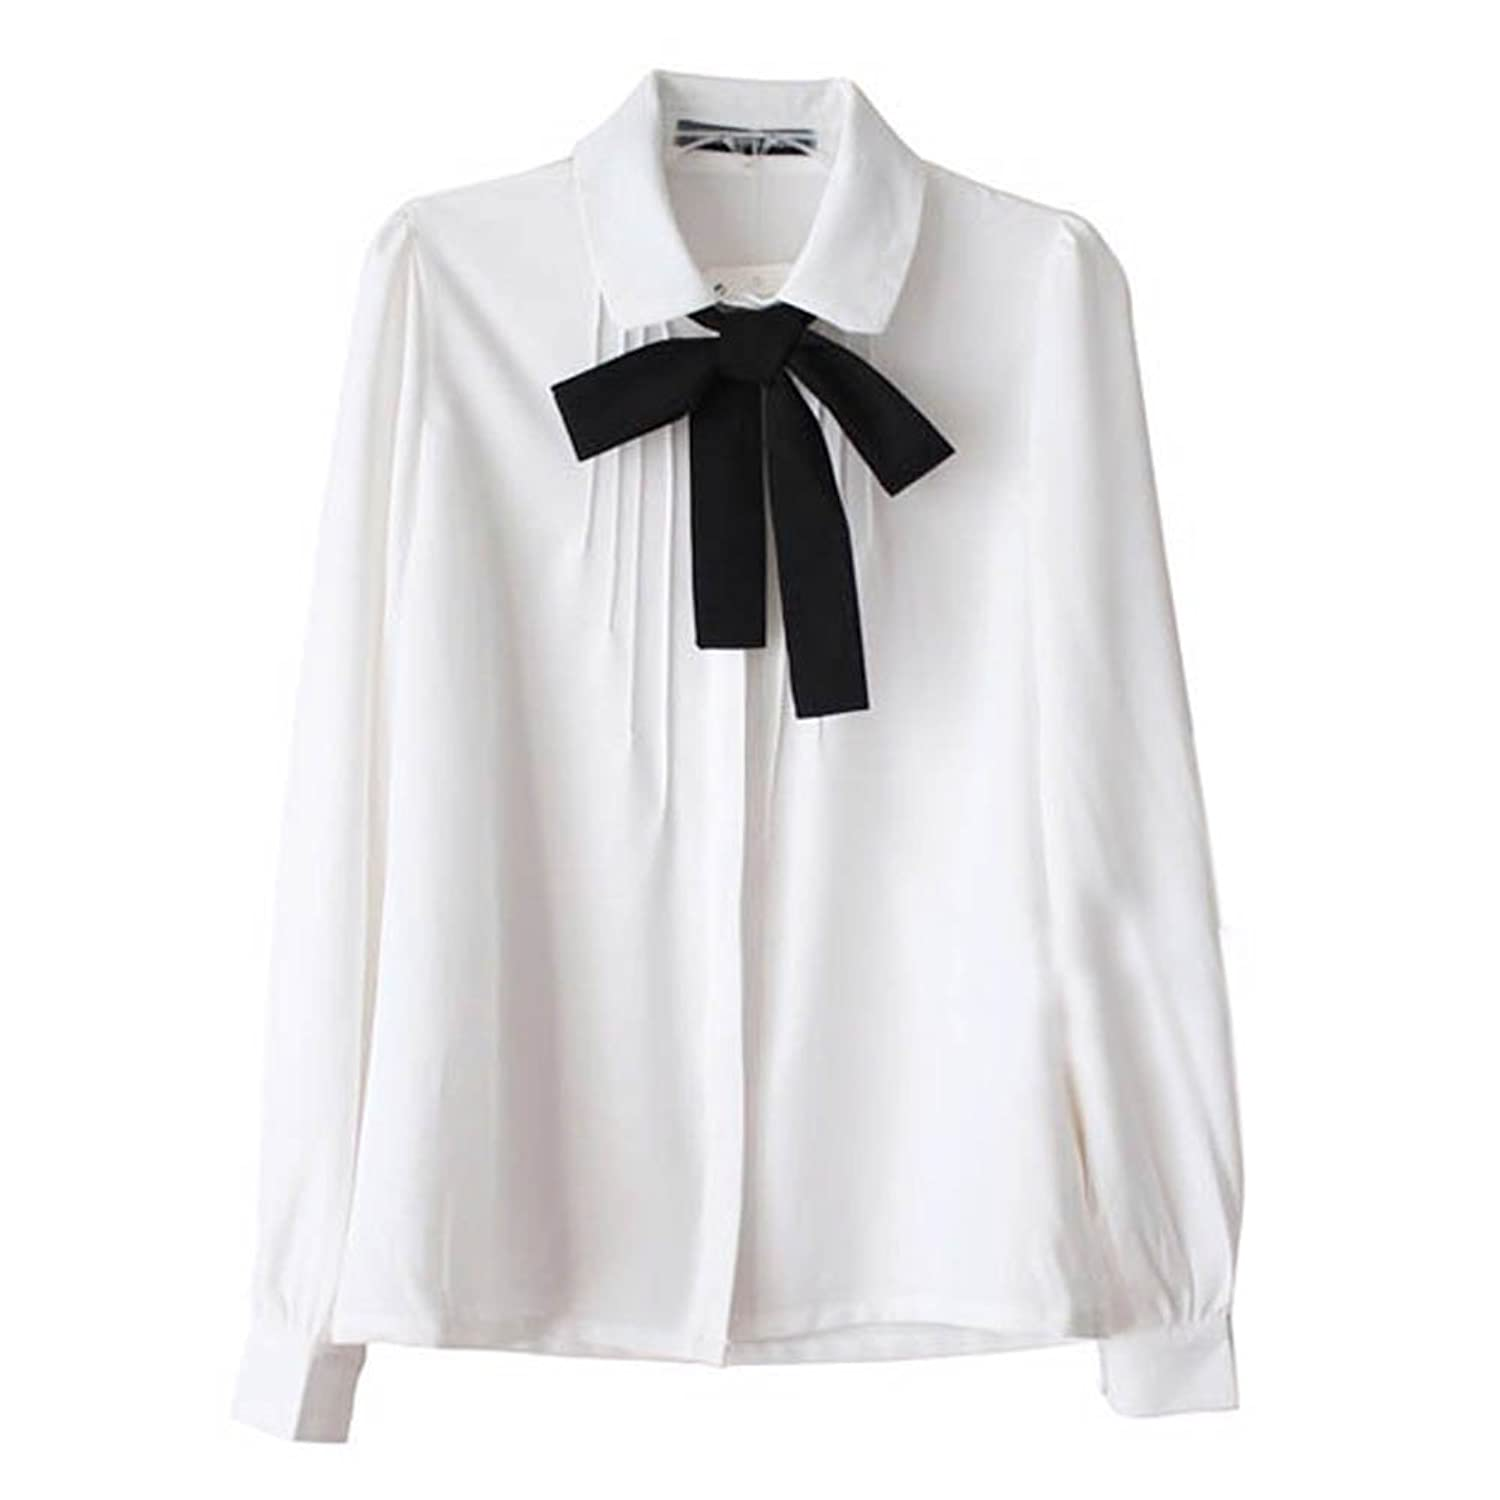 Edwardian Blouses | White & Black Lace Blouses & Sweaters Etosell Lady Bowknot Baby Peter Pan Collar Shirt Womens Long Sleeve OL Button-Down Shirts White Blouses $13.99 AT vintagedancer.com